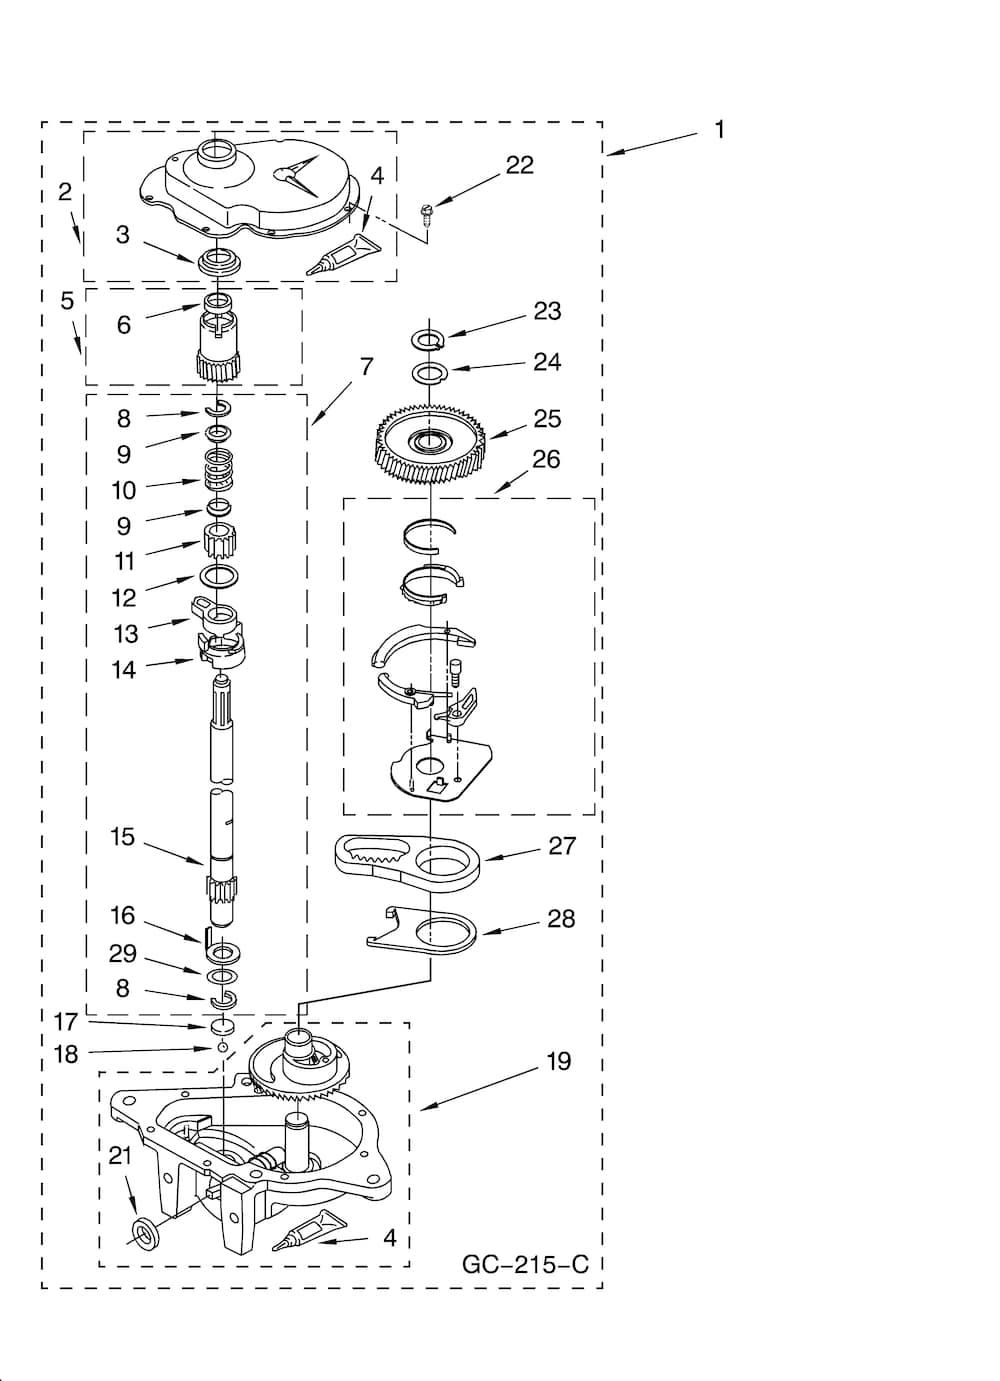 sears dryer wiring diagram bazooka bta850fh kenmore 70 series washer parts   automotive images